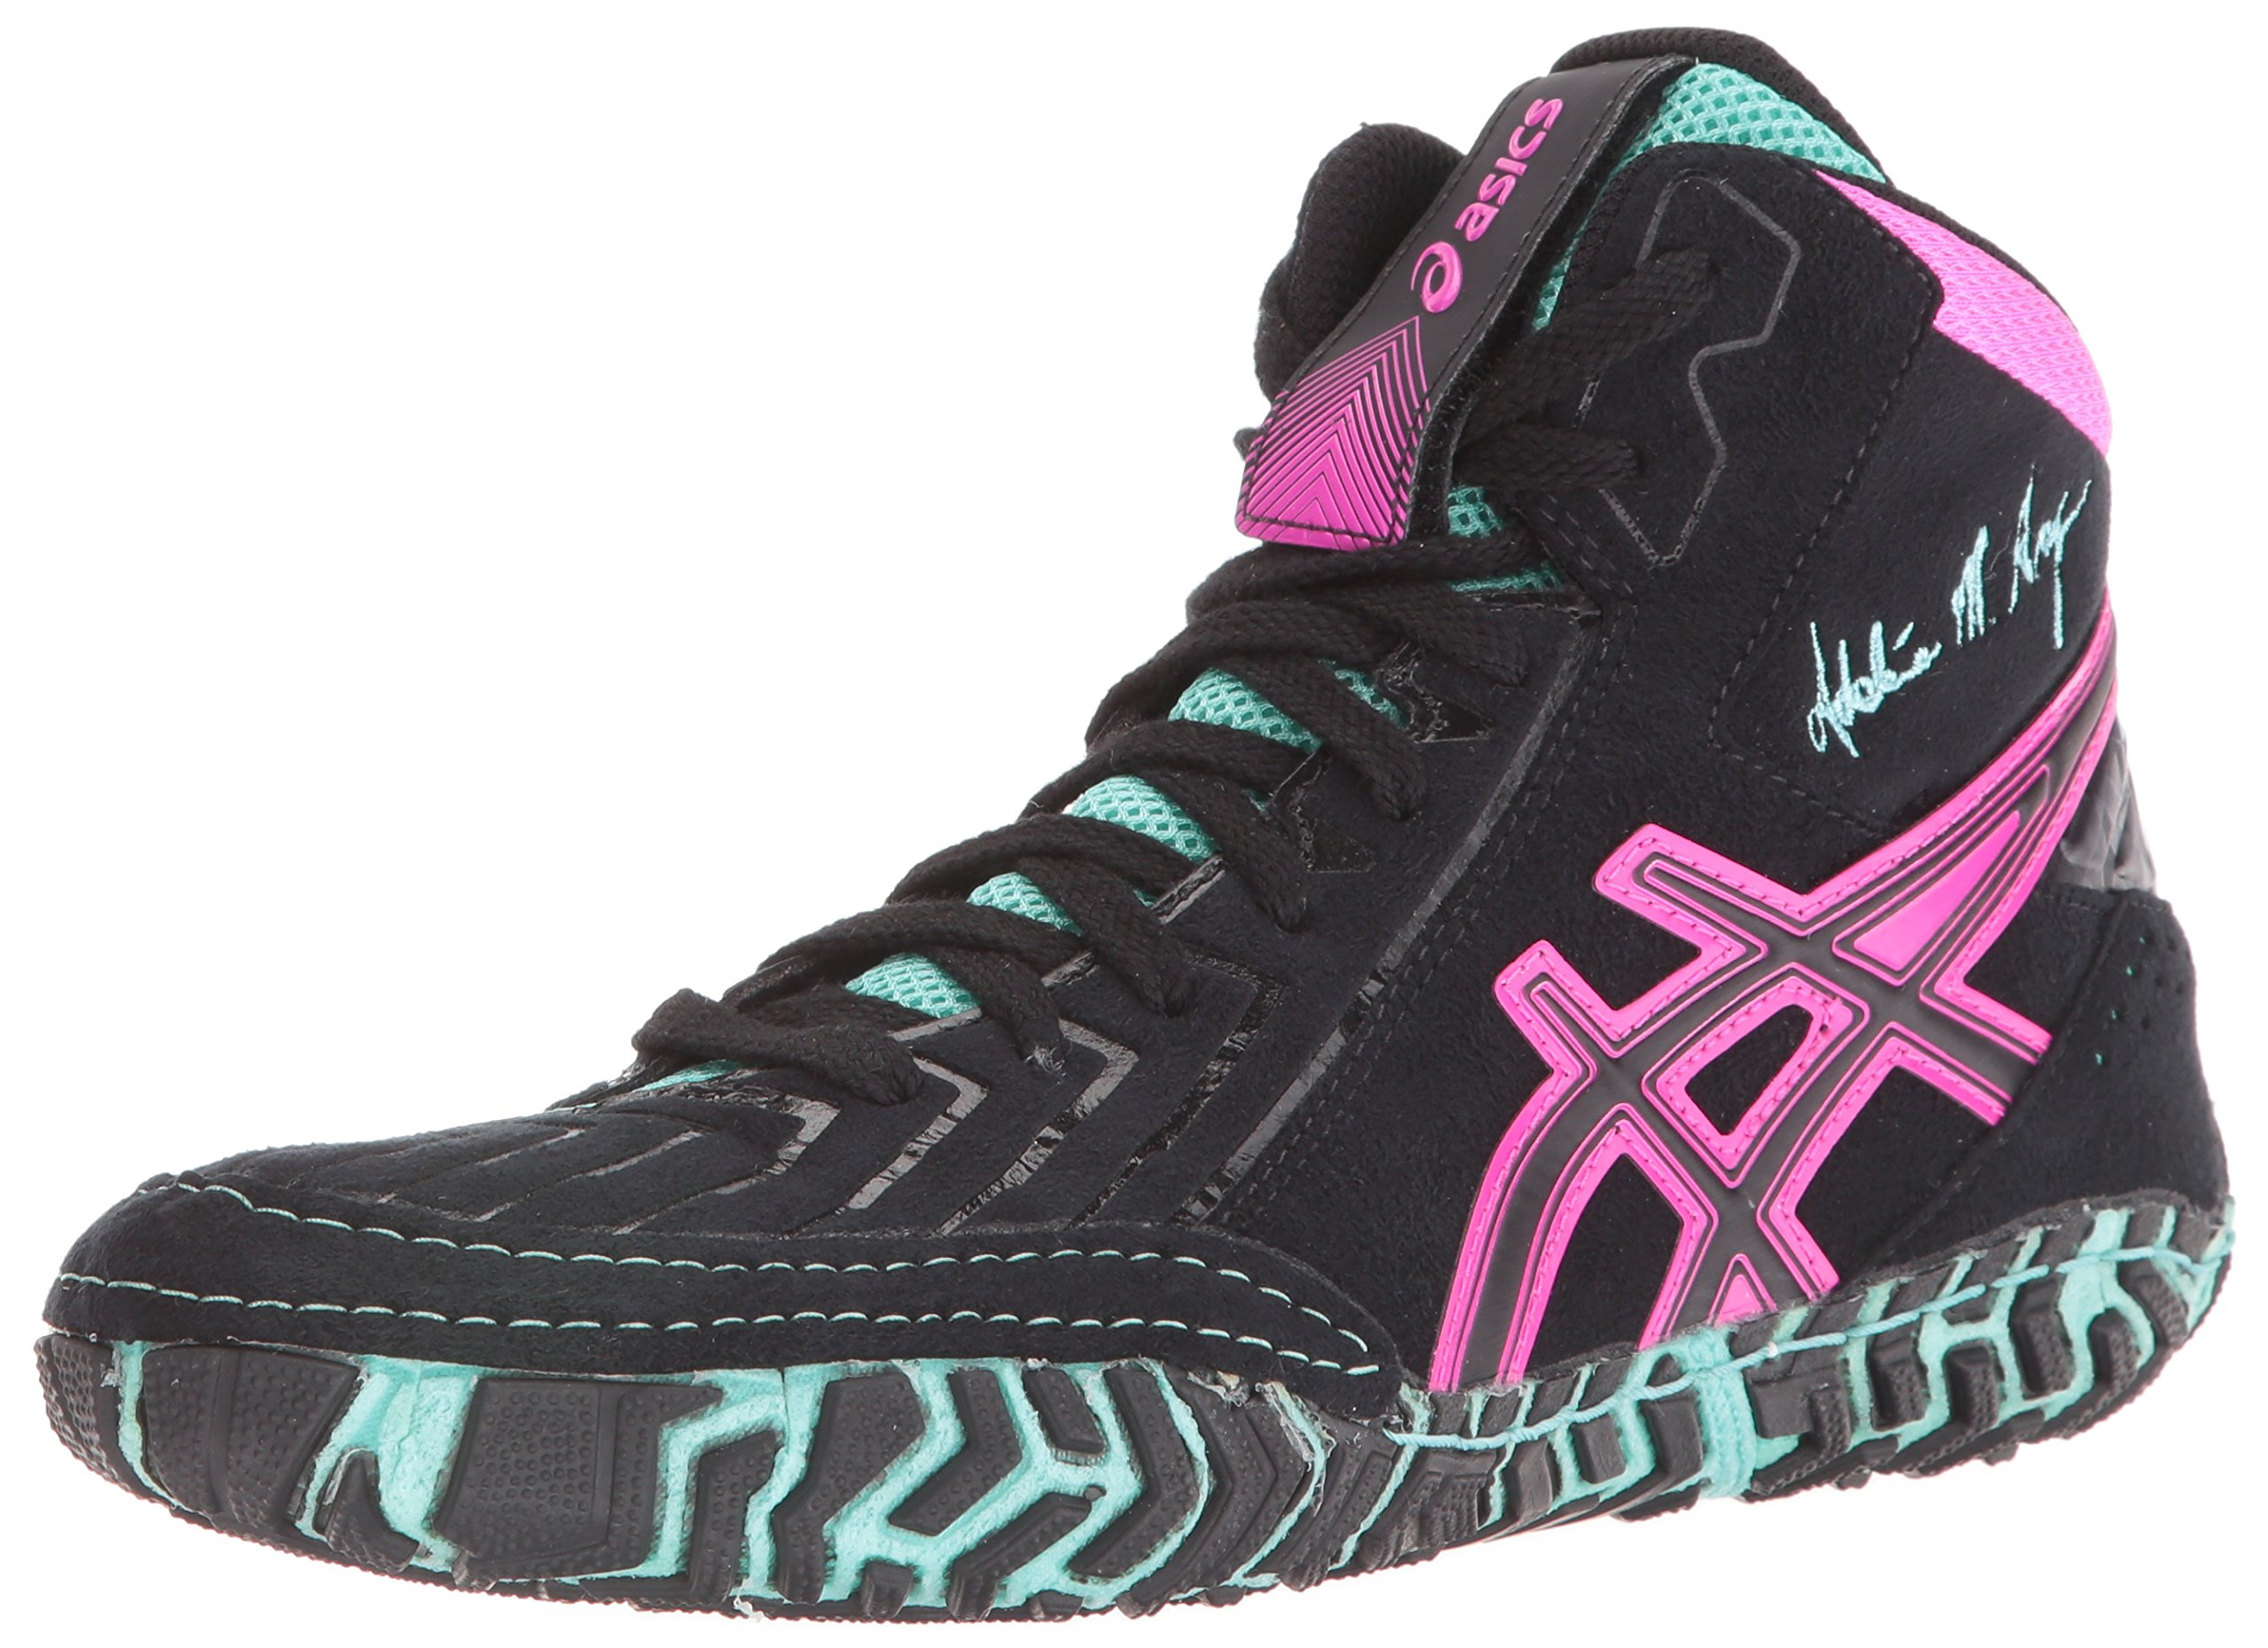 ASICS Men's Aggressor 3 L.E. AG Wrestling Shoe, Black/Onyx/Pink Glow, 6 M US